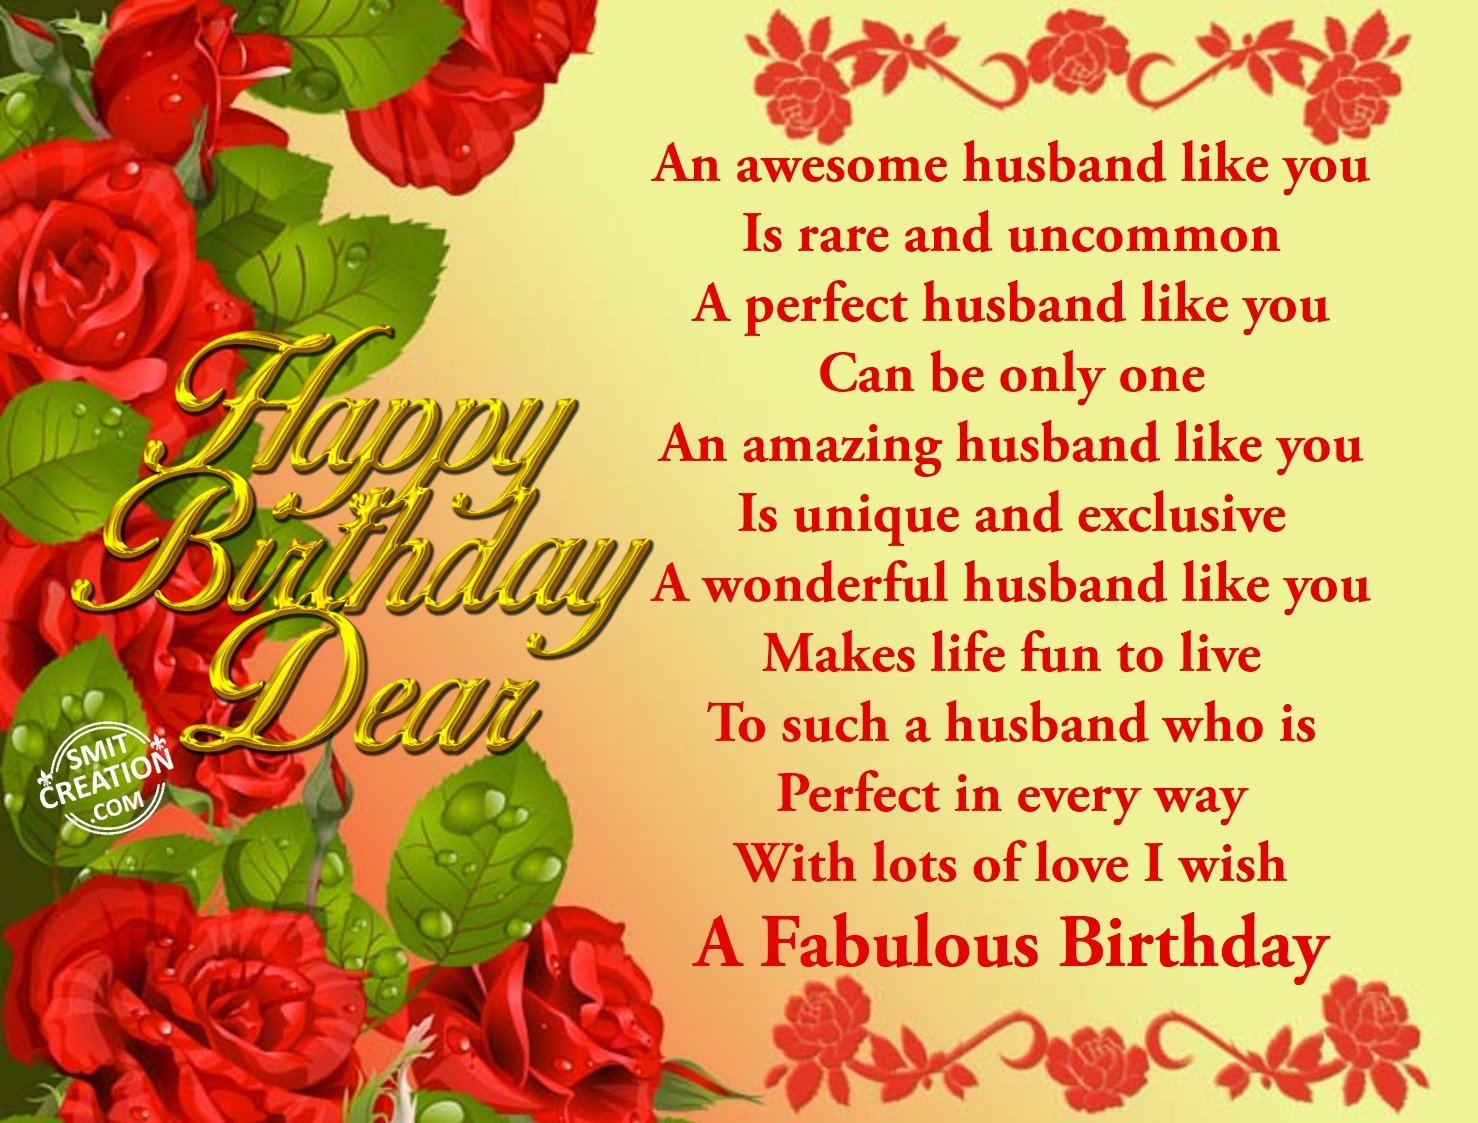 Excellent Birthday Wishes For Husband Pictures And Graphics Smitcreation Valentine Love Quotes Grandhistoriesus